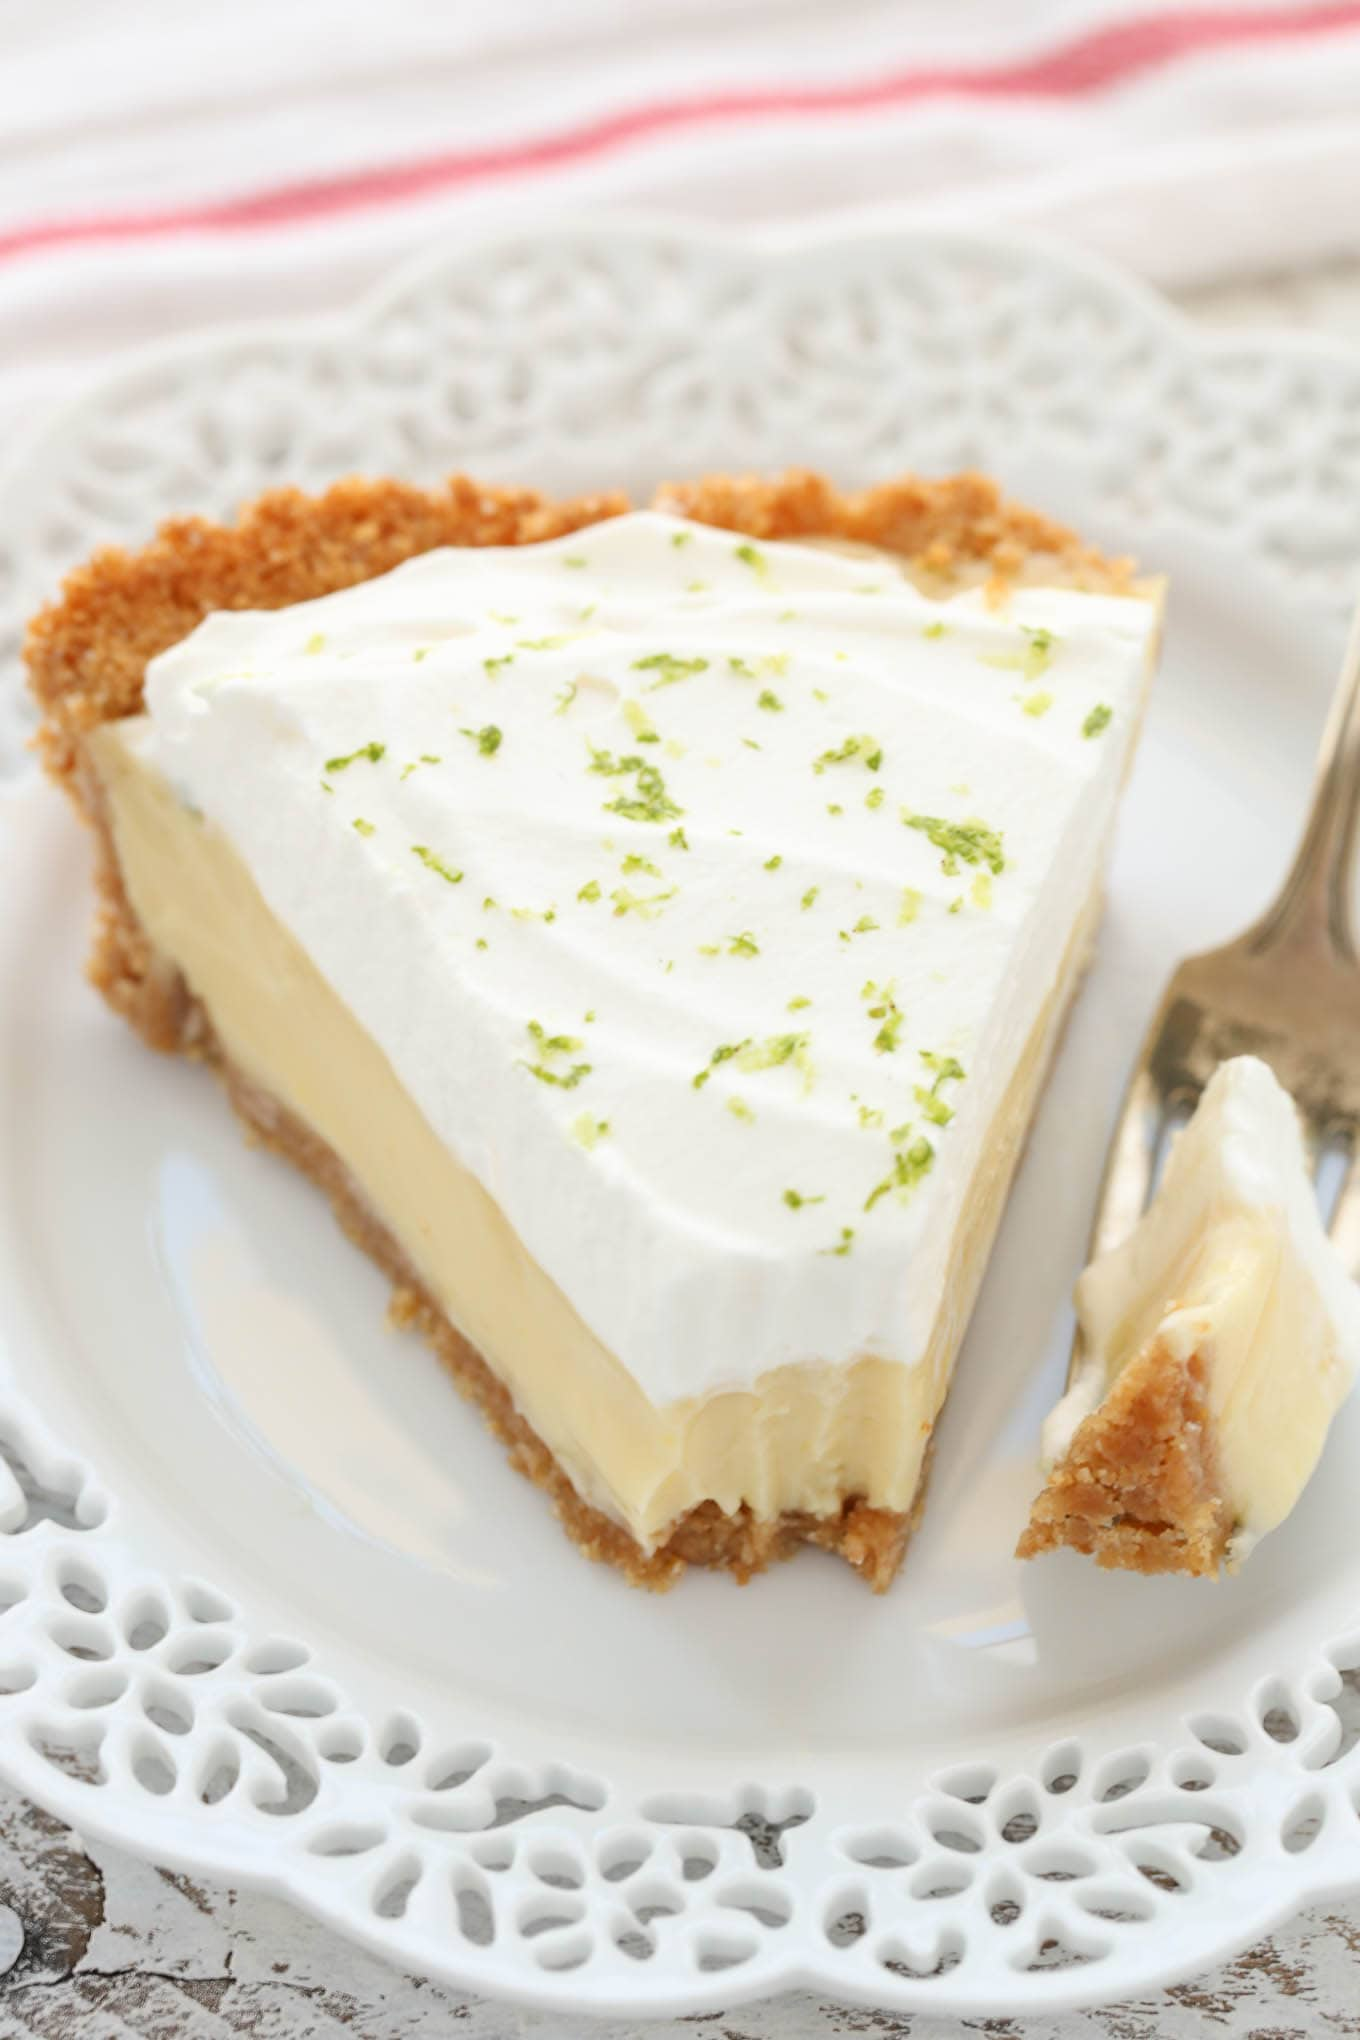 This Classic Key Lime Pie features an easyhomemade graham cracker crust, a smooth and creamy key lime pie filling, and homemade whipped cream on top. The perfect dessert for key lime lovers!